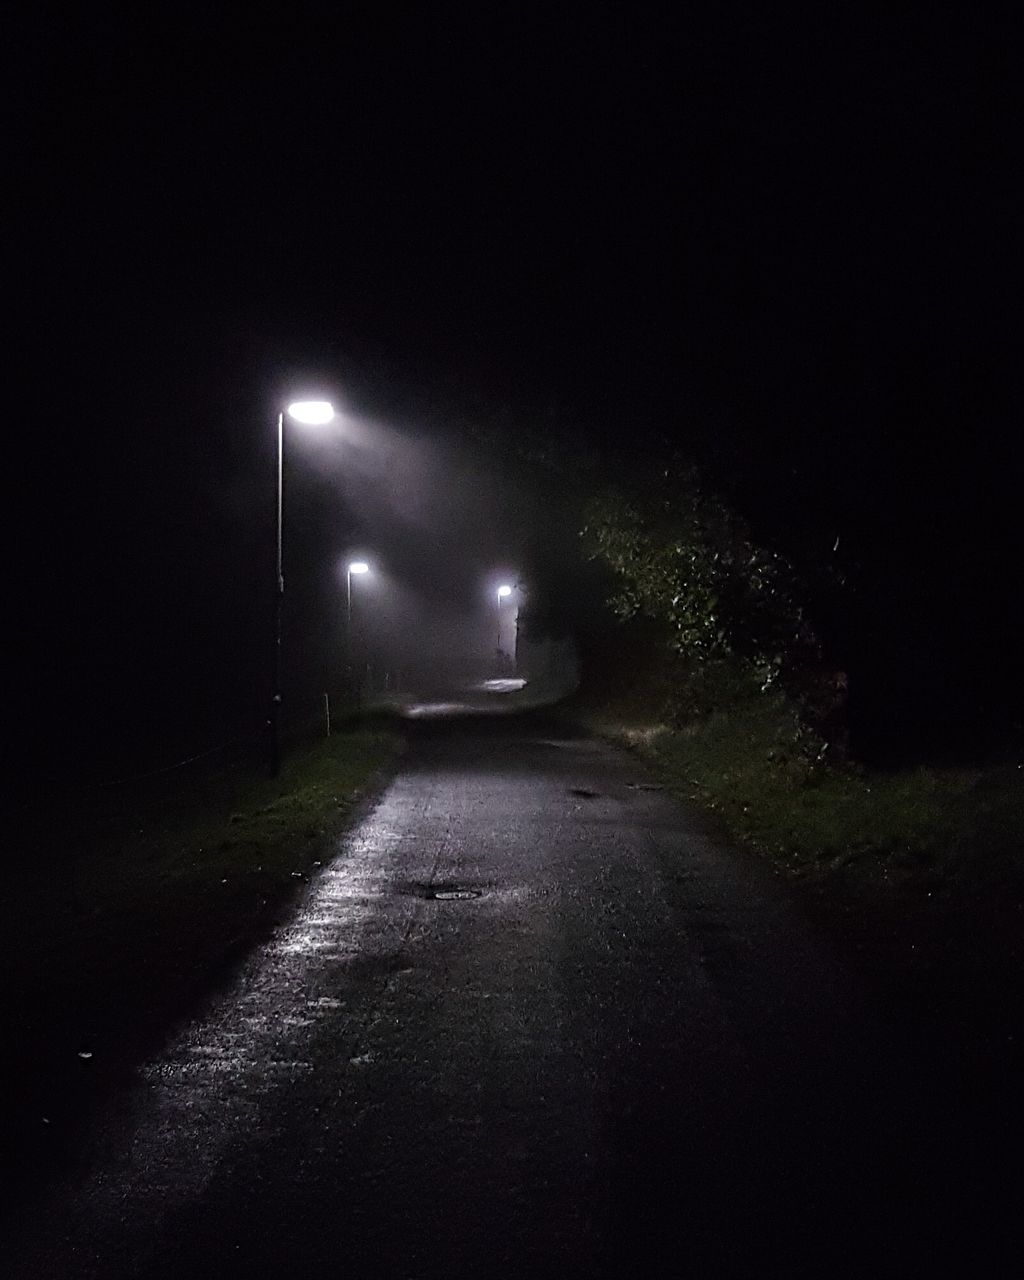 night, illuminated, street light, the way forward, road, dark, transportation, no people, outdoors, nature, sky